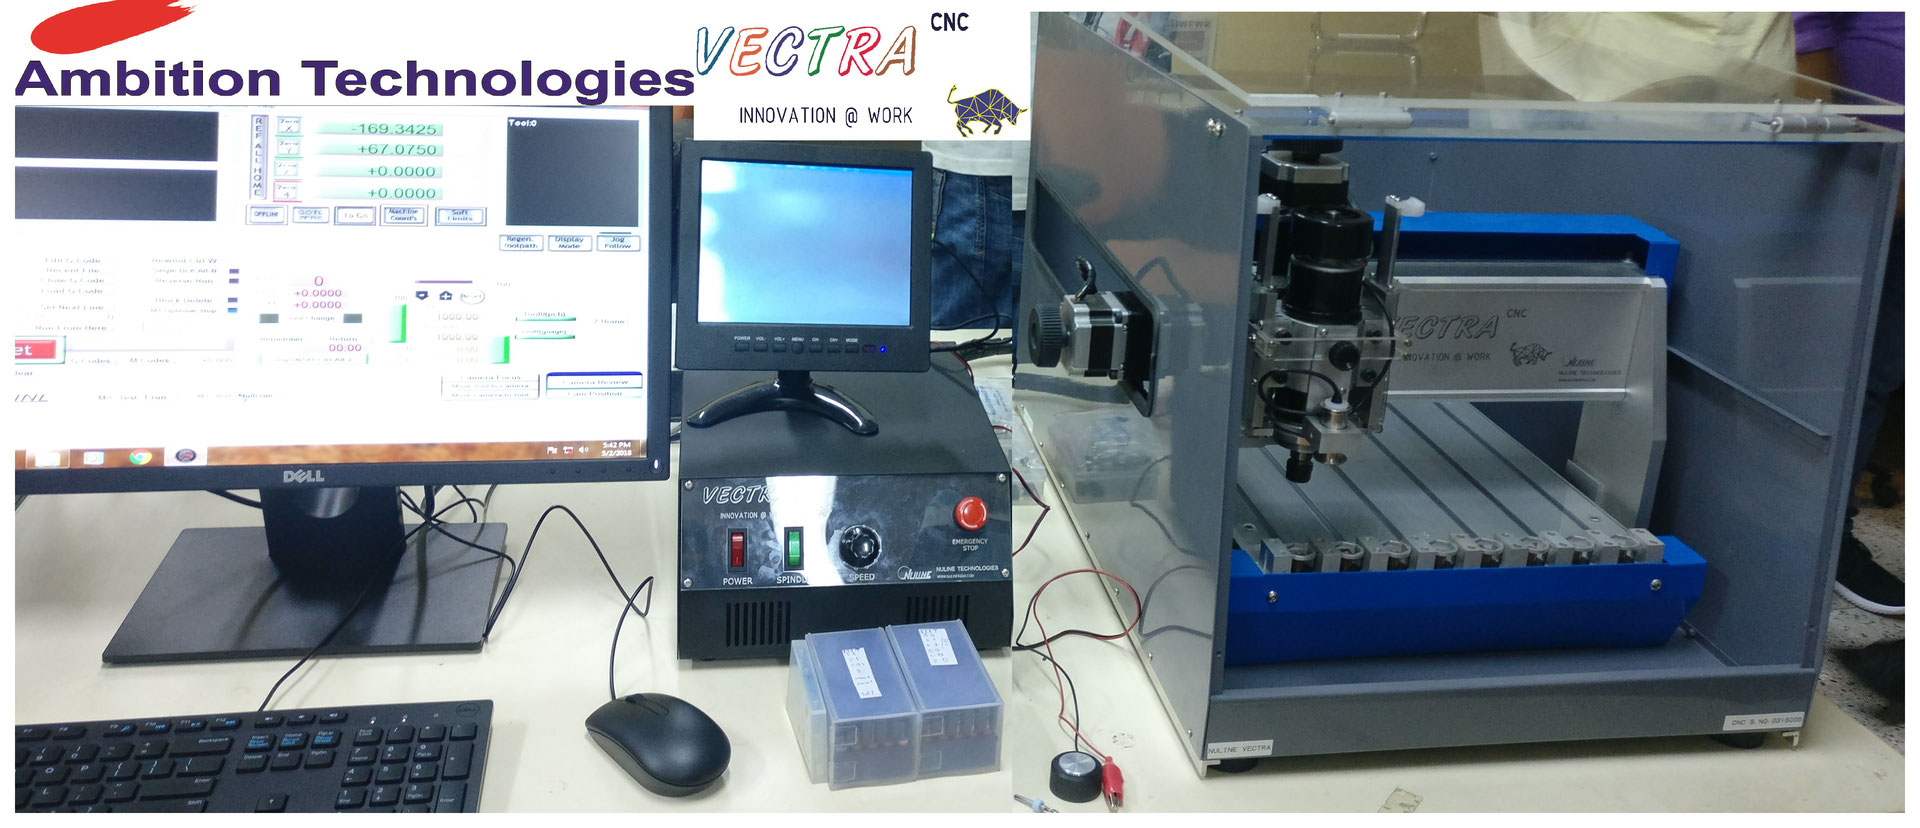 Vectra Cnc Pcb Prototyping Machine Ambitiontech Tutorial On Printed Circuit Board Design